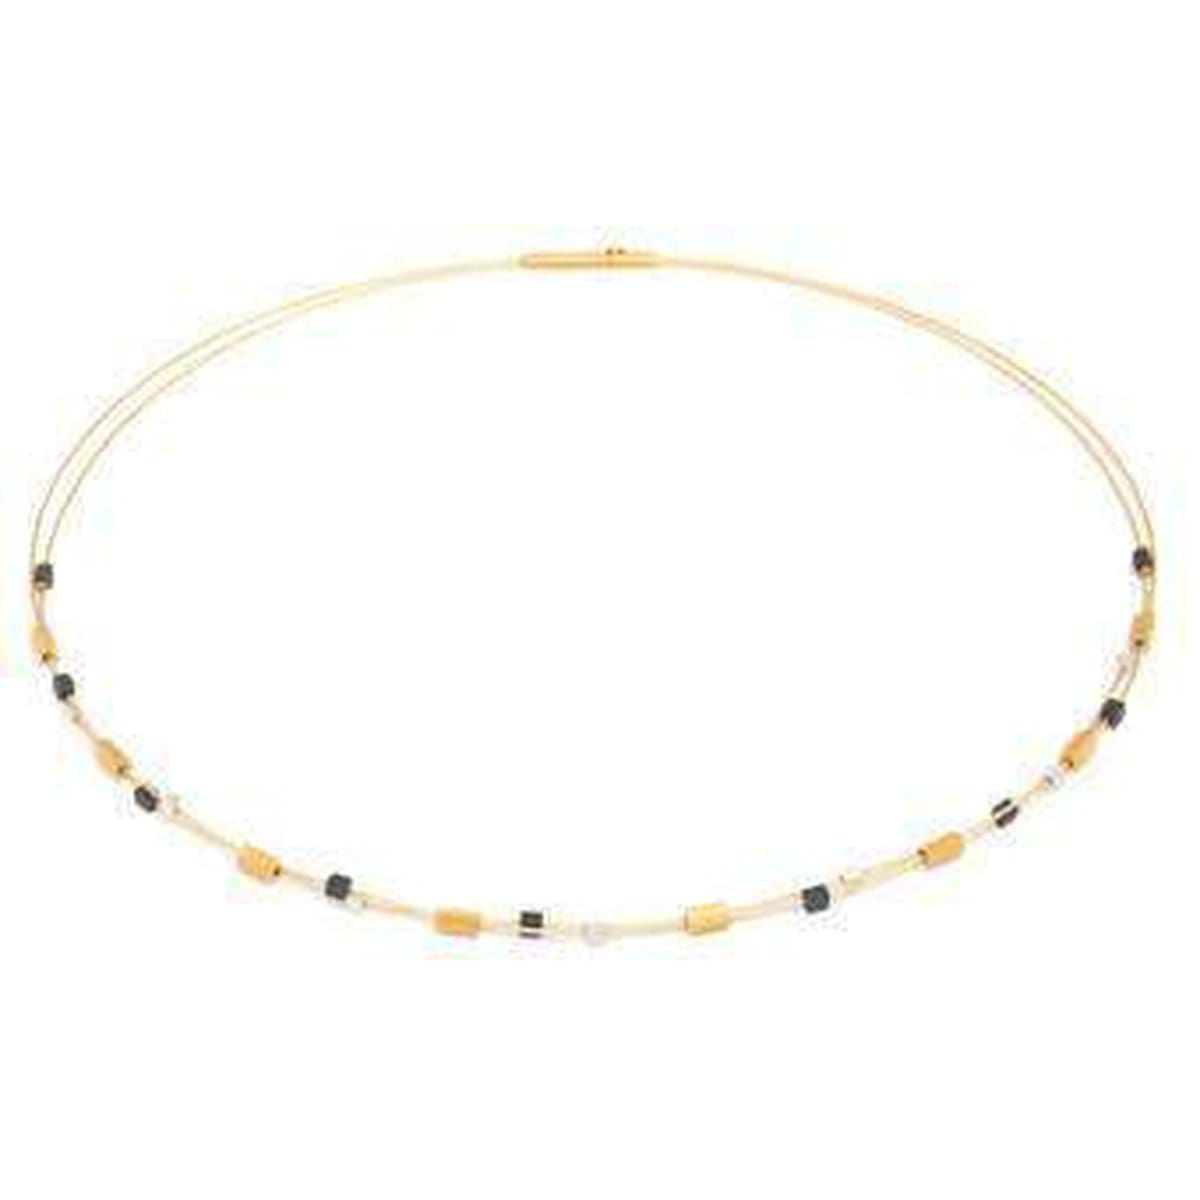 Tristana Hematine Necklace - 85334276-Bernd Wolf-Renee Taylor Gallery